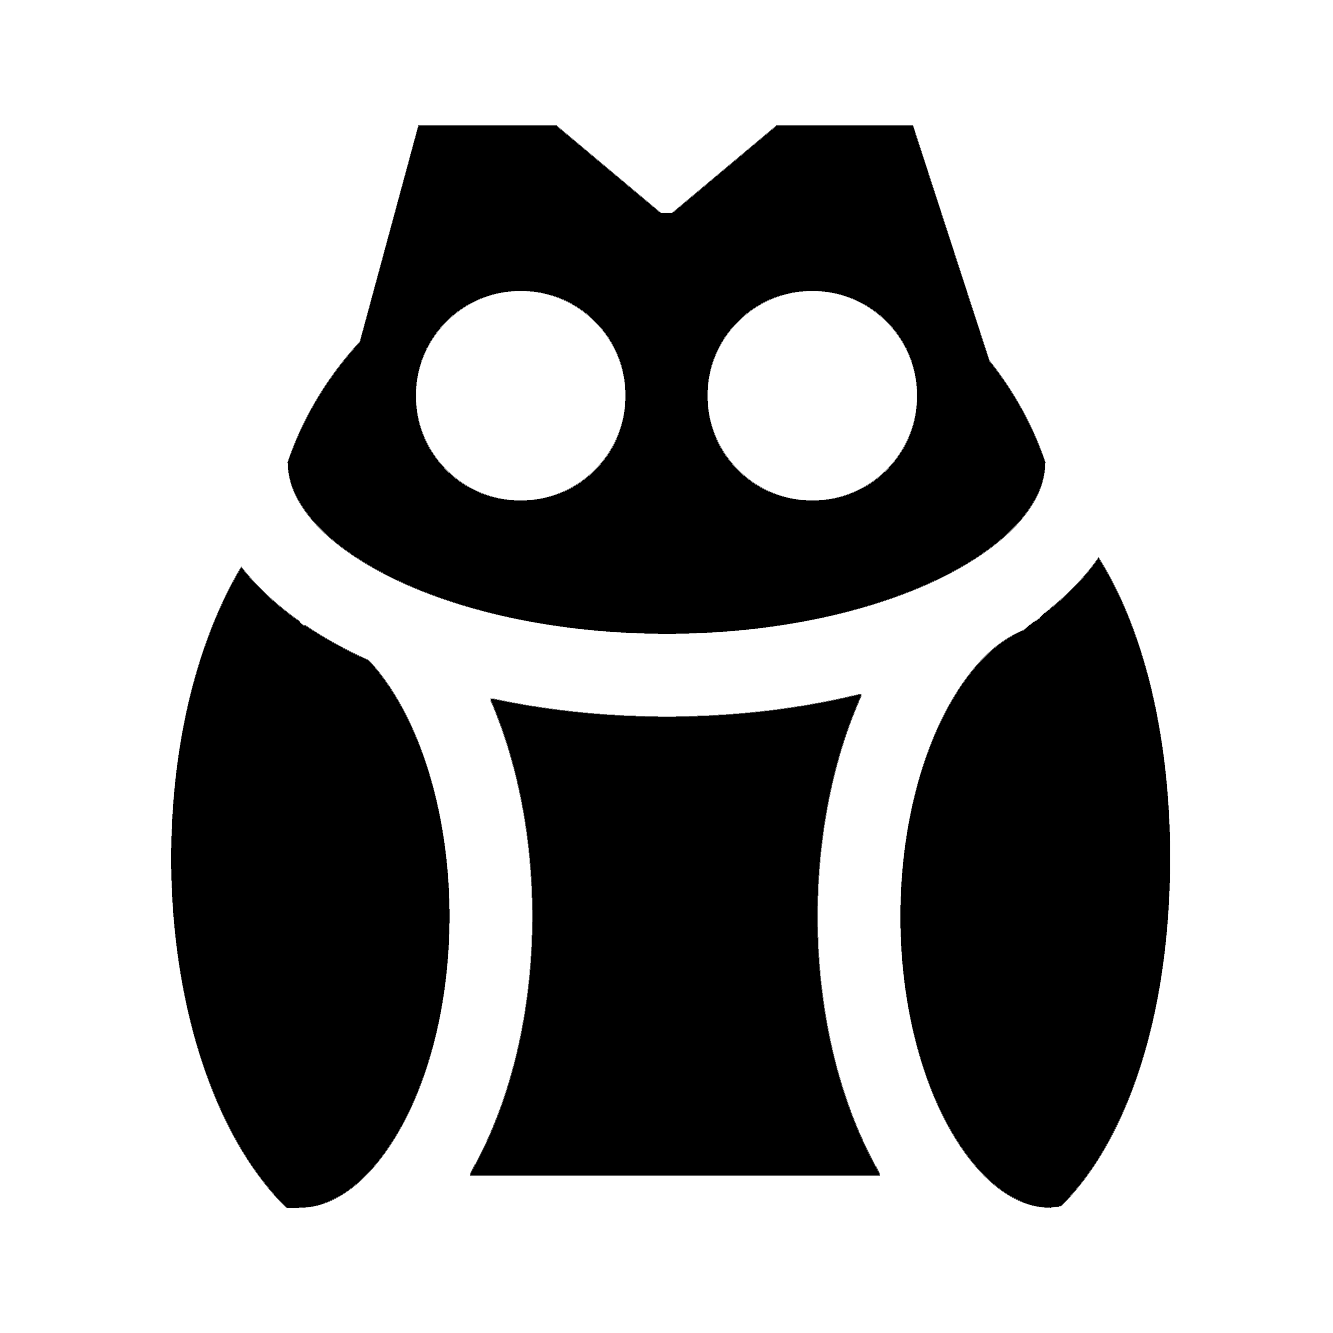 Combine cliparts into sprite sheet svg black and white svg - Inkscape: after bitmap trace, break shapes into own paths (for ... svg black and white